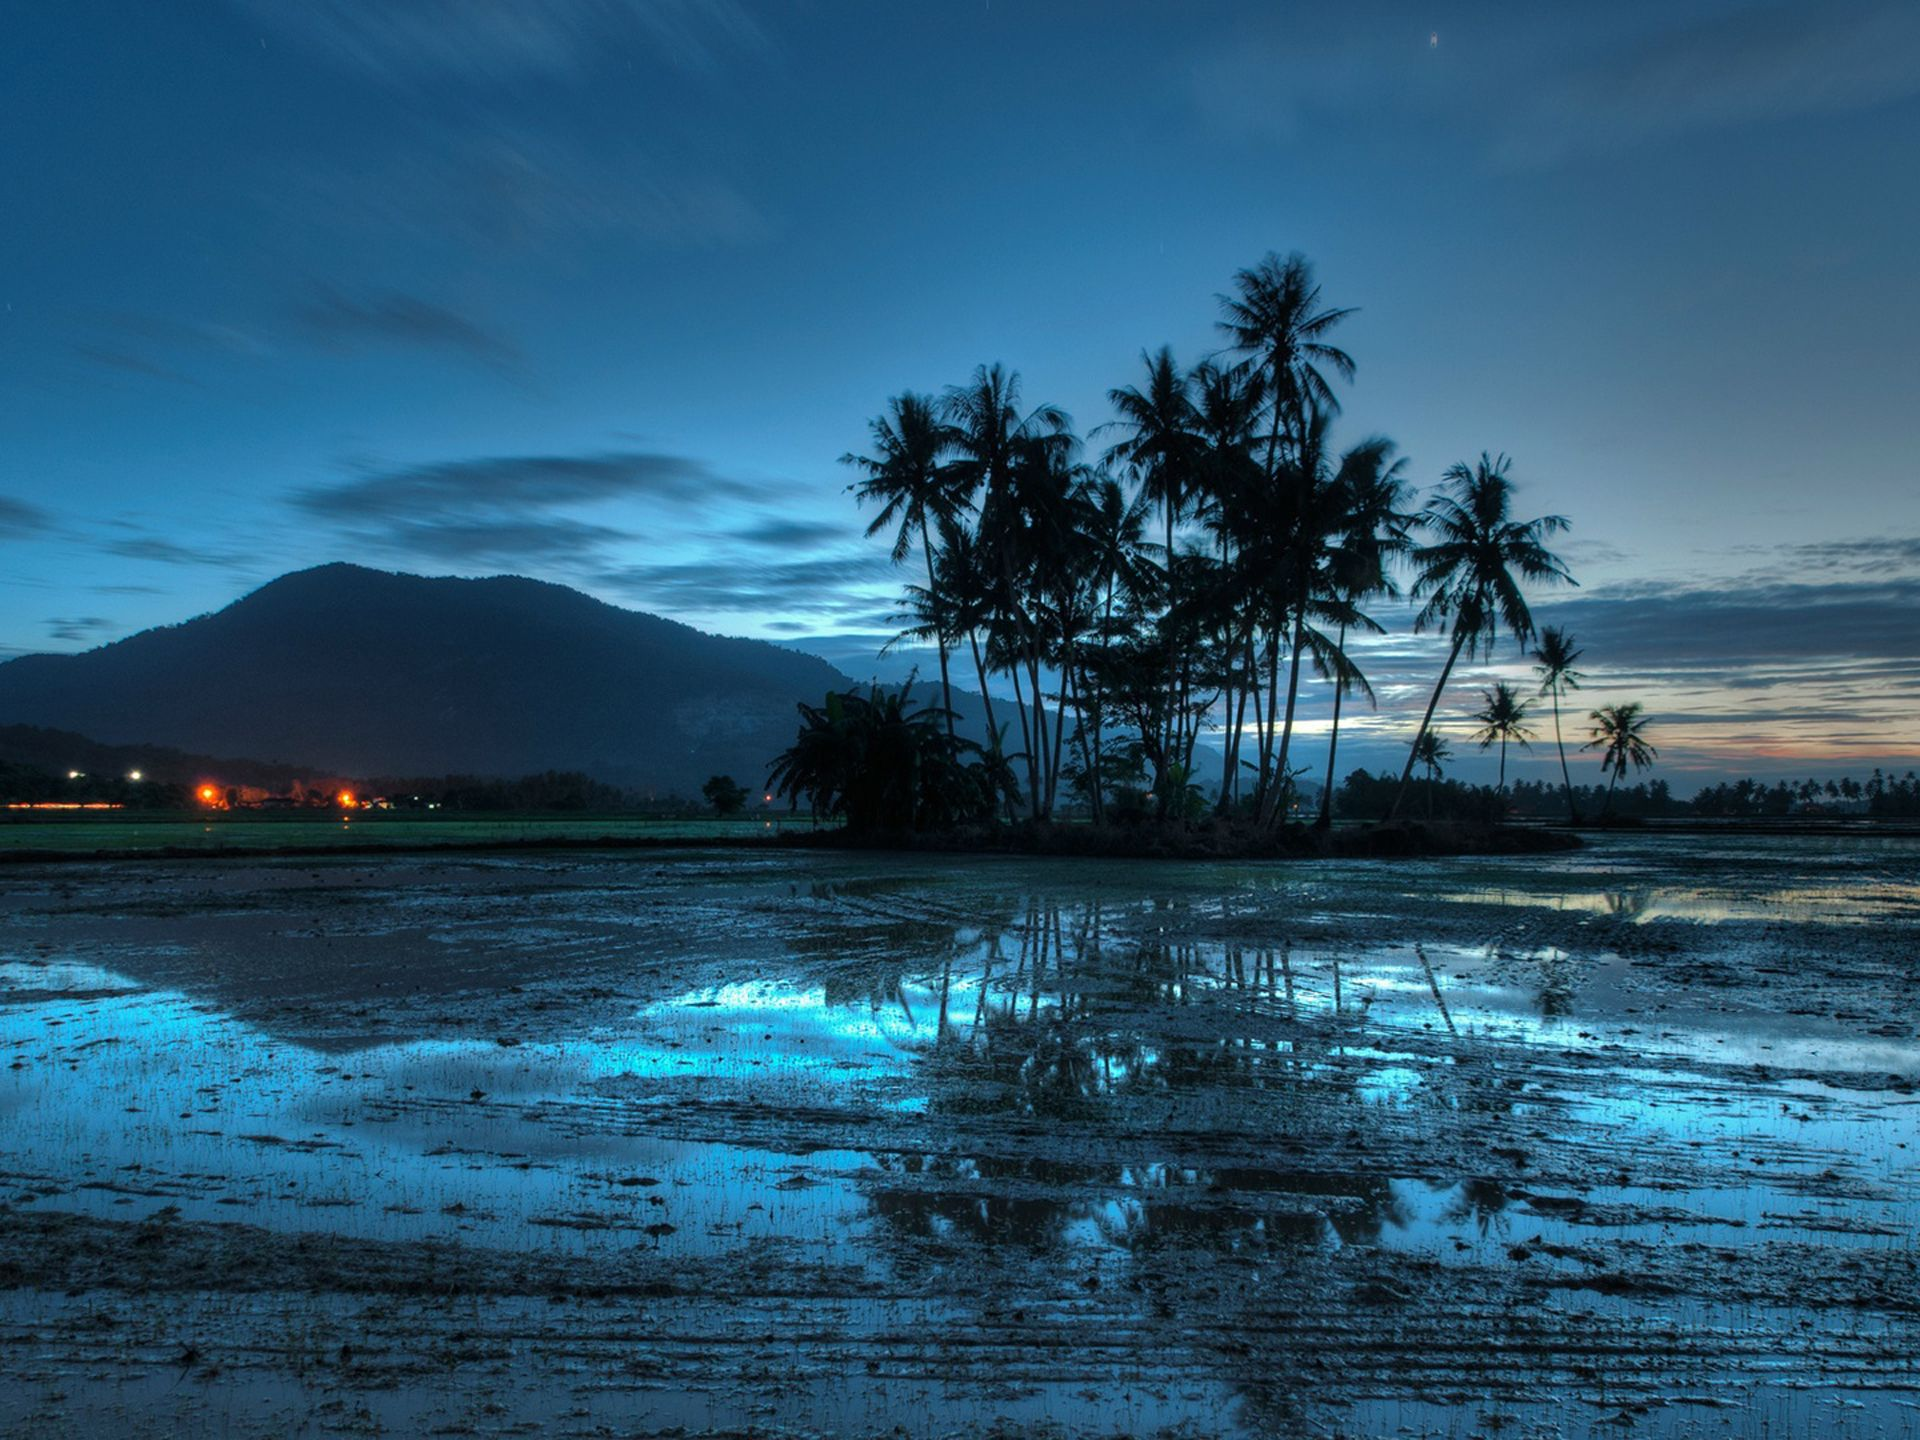 Evening beach at low tide